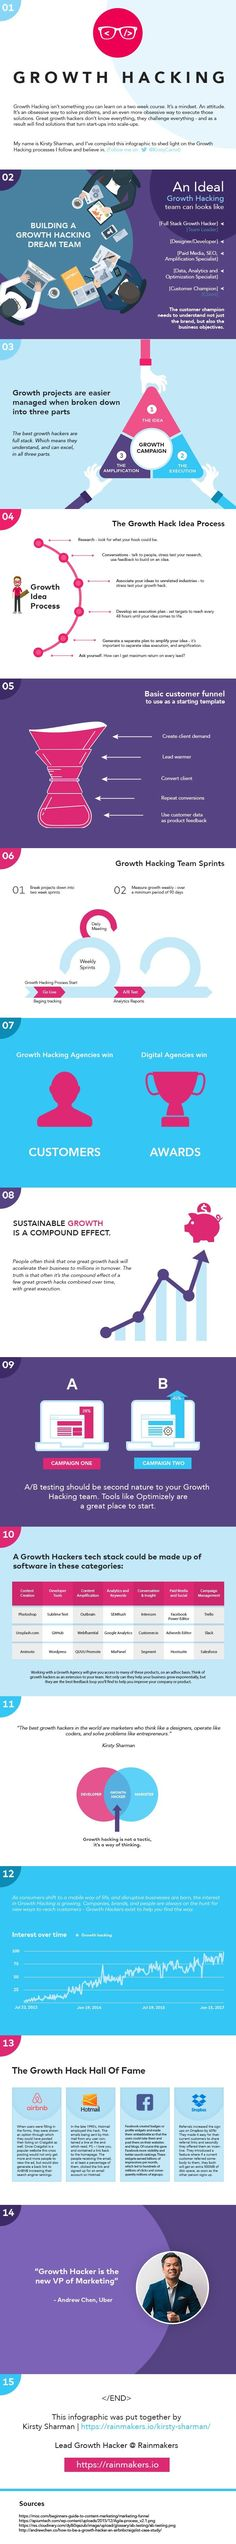 A Definitive Guide To Growth Hacking - #infographic